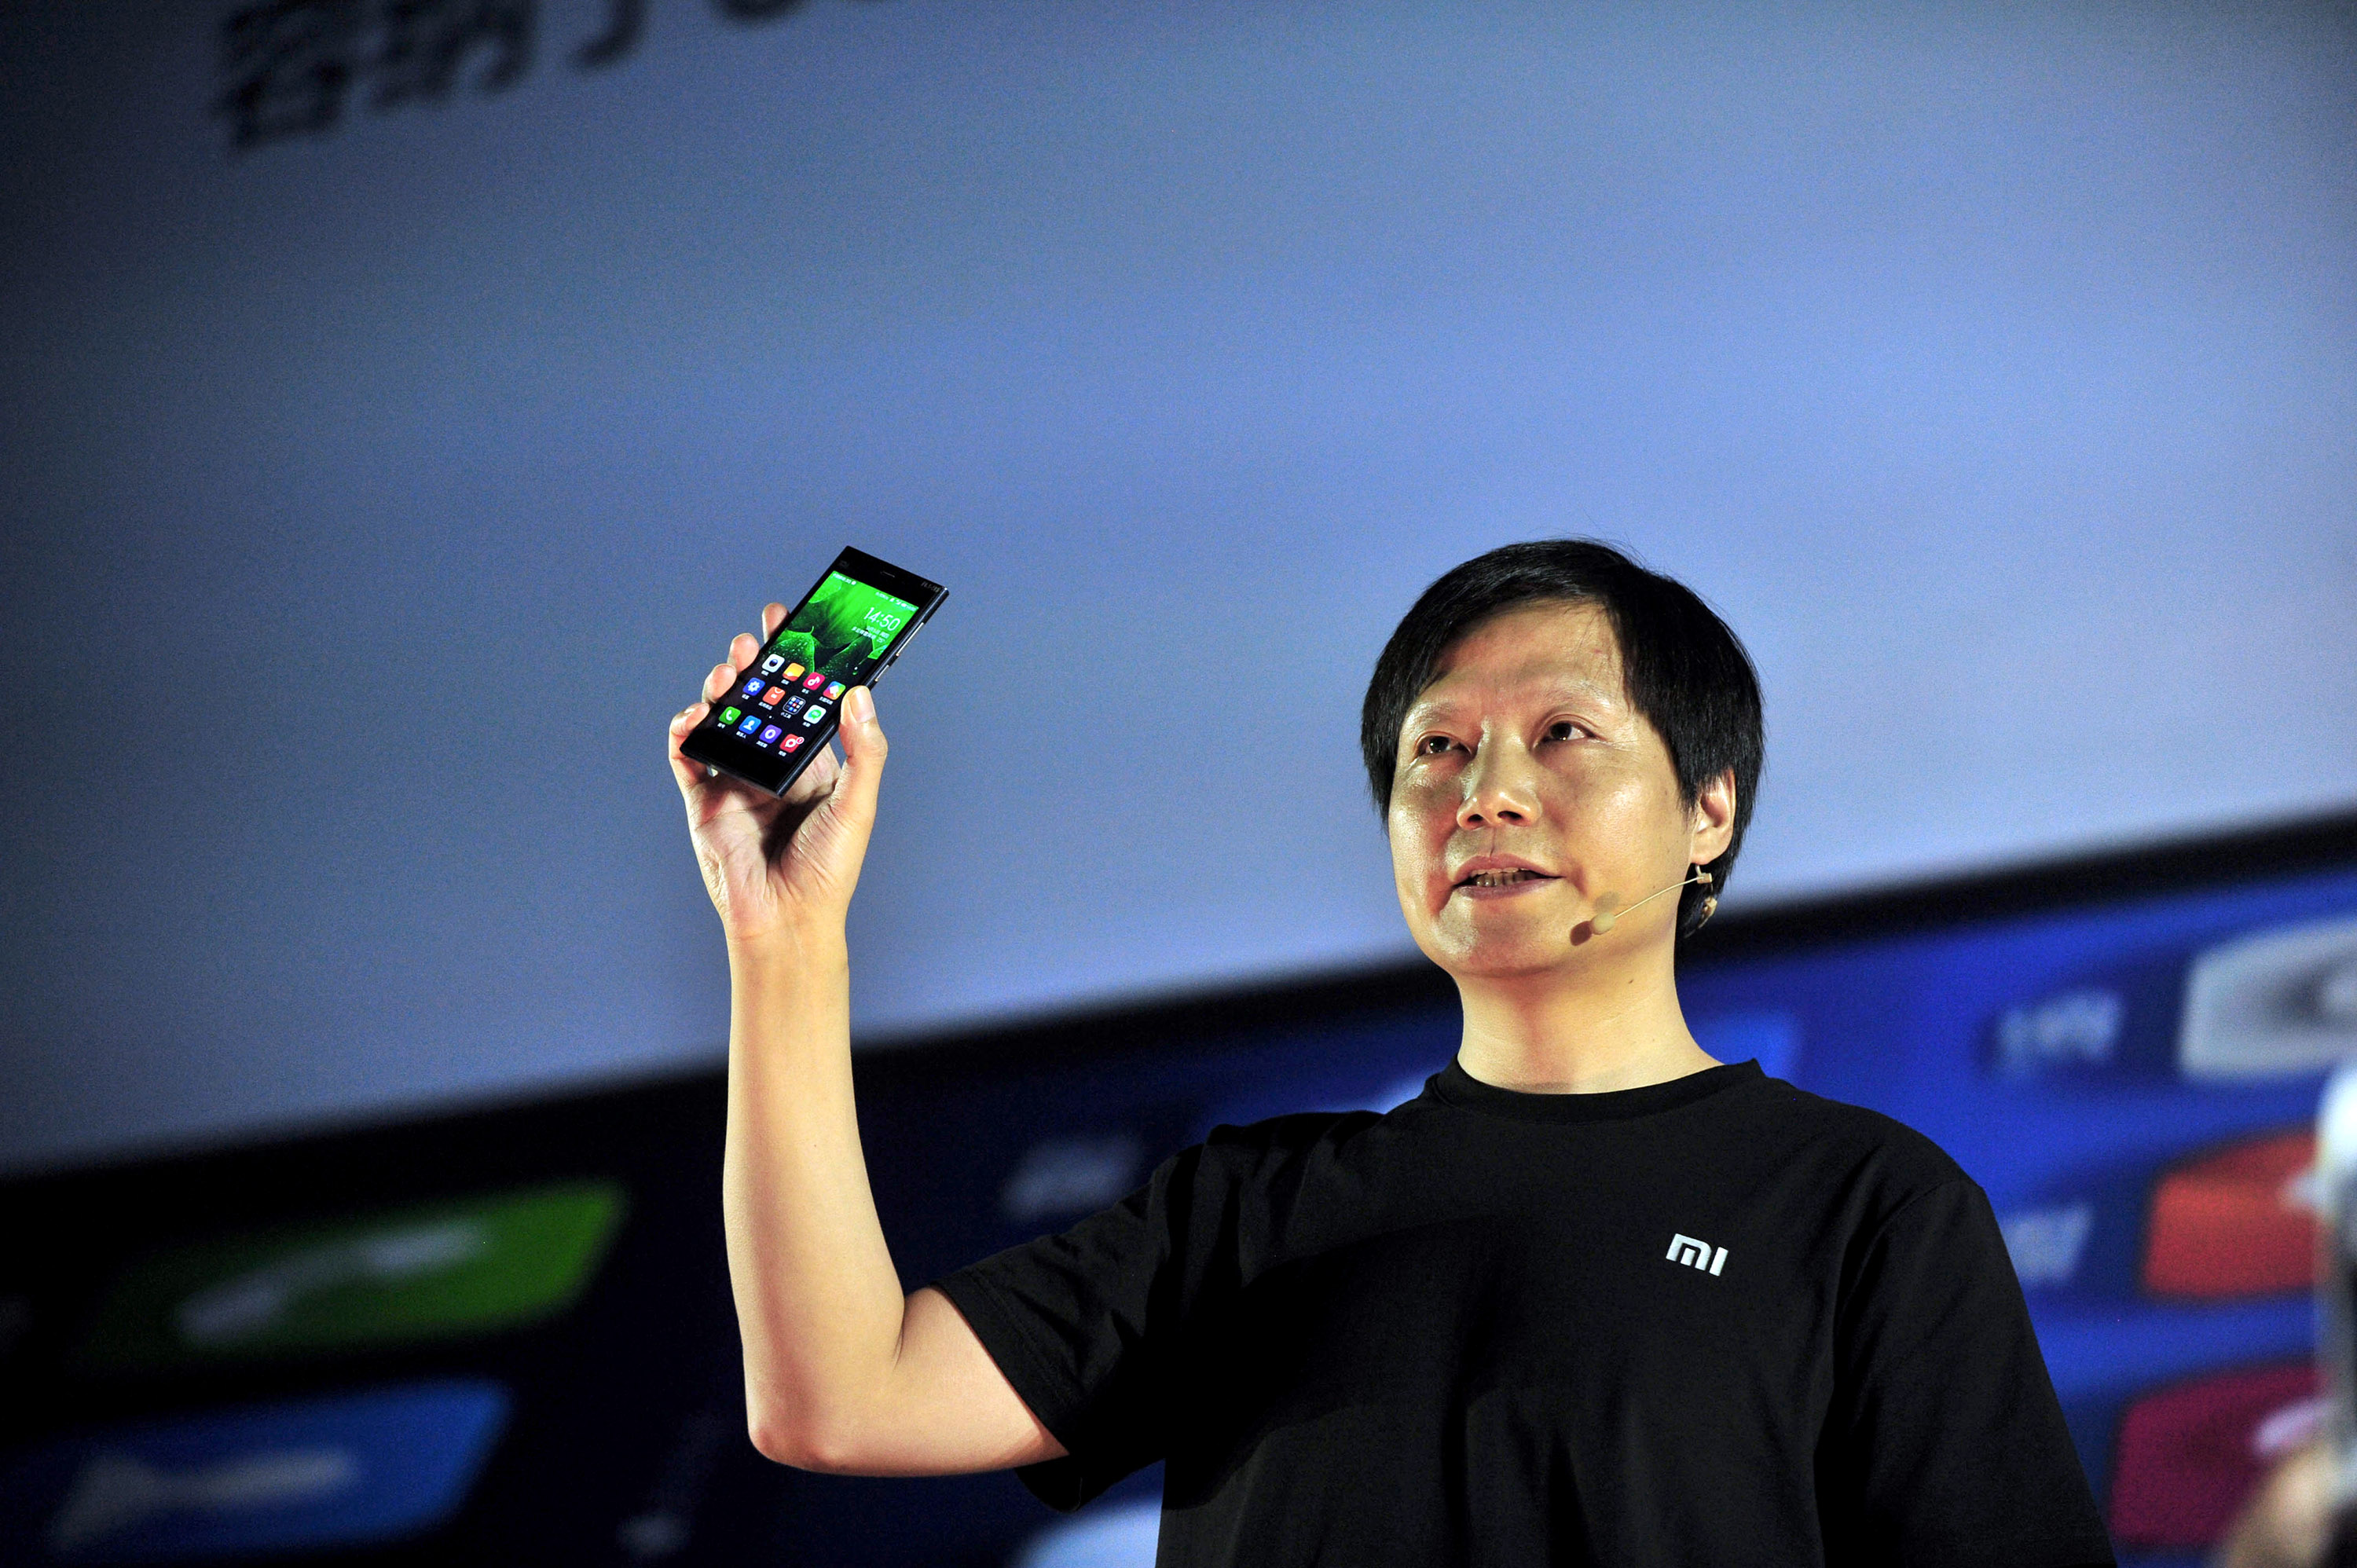 Xiaomi claims its third smartphone is the fastest